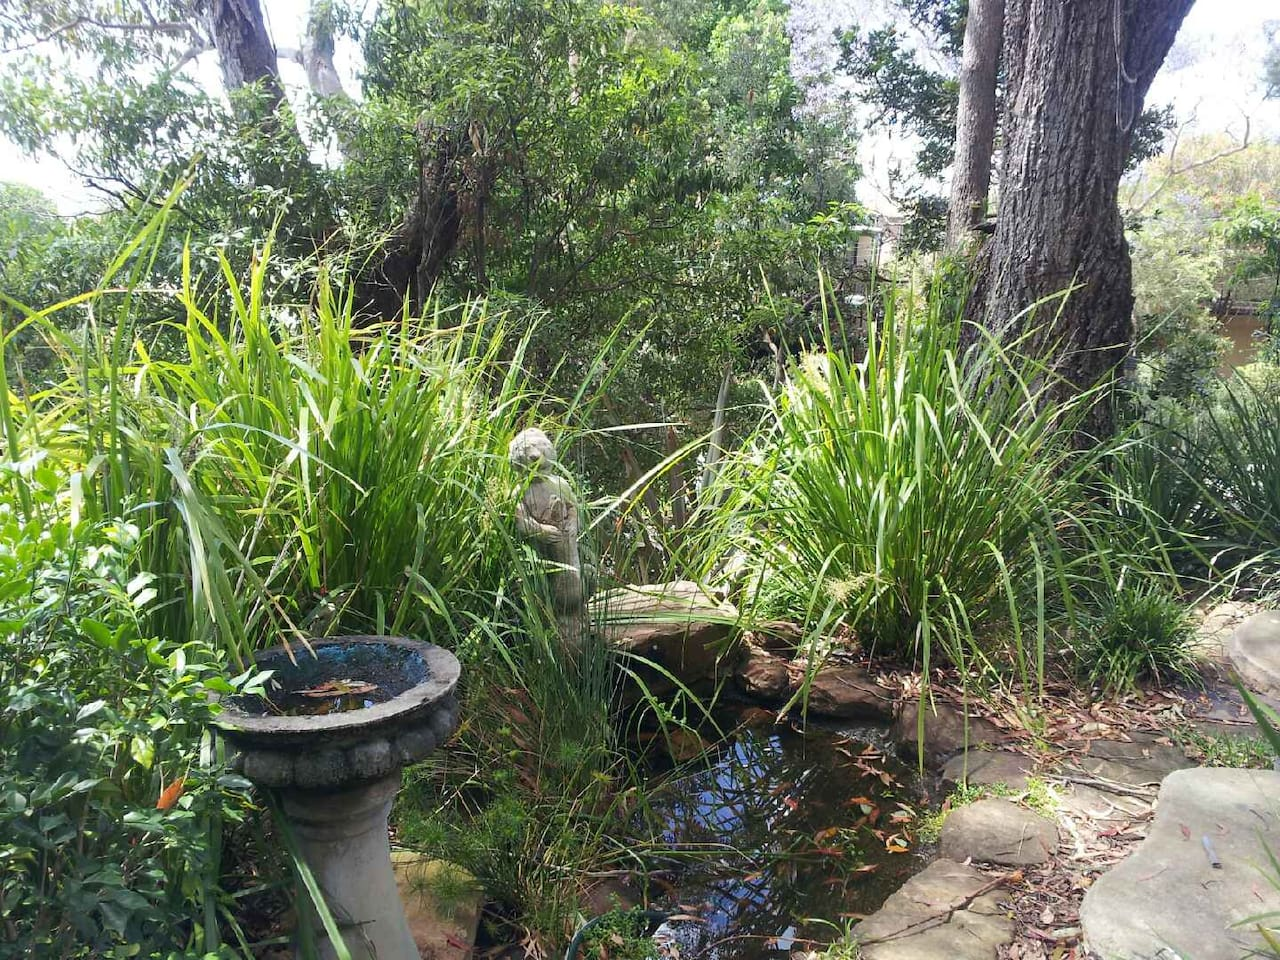 Front garden pond - leafy, green and peaceful